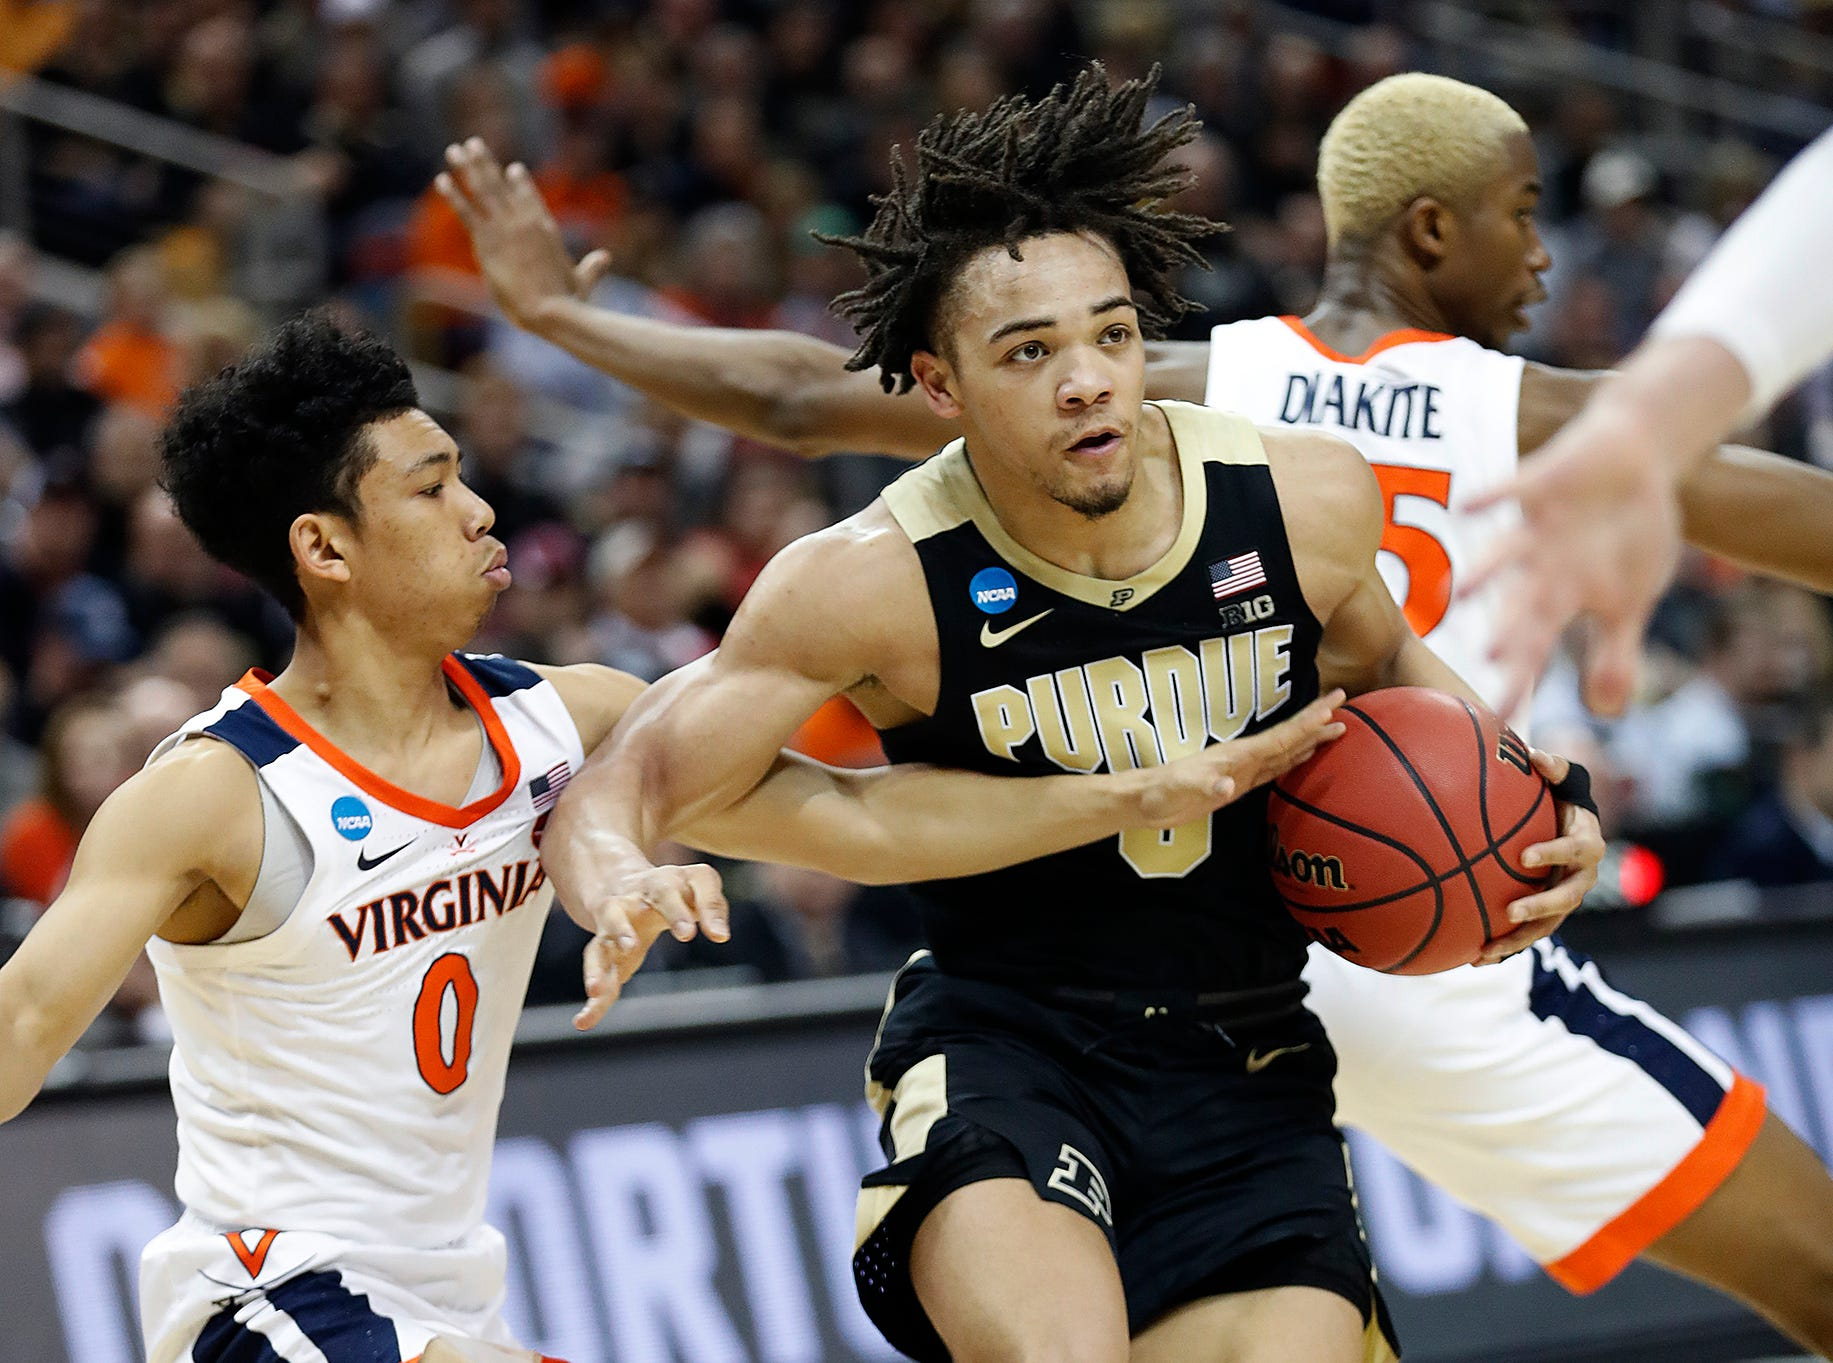 "Purdue Boilermakers guard Carsen Edwards (3) drives on Virginia Cavaliers guard Kihei Clark (0) in the first half of their NCAA Division I Basketball Championship ""Elite 8"" basketball game at the KFC Yum! Center in Louisville, KY., on Saturday, Mar 30, 2019."